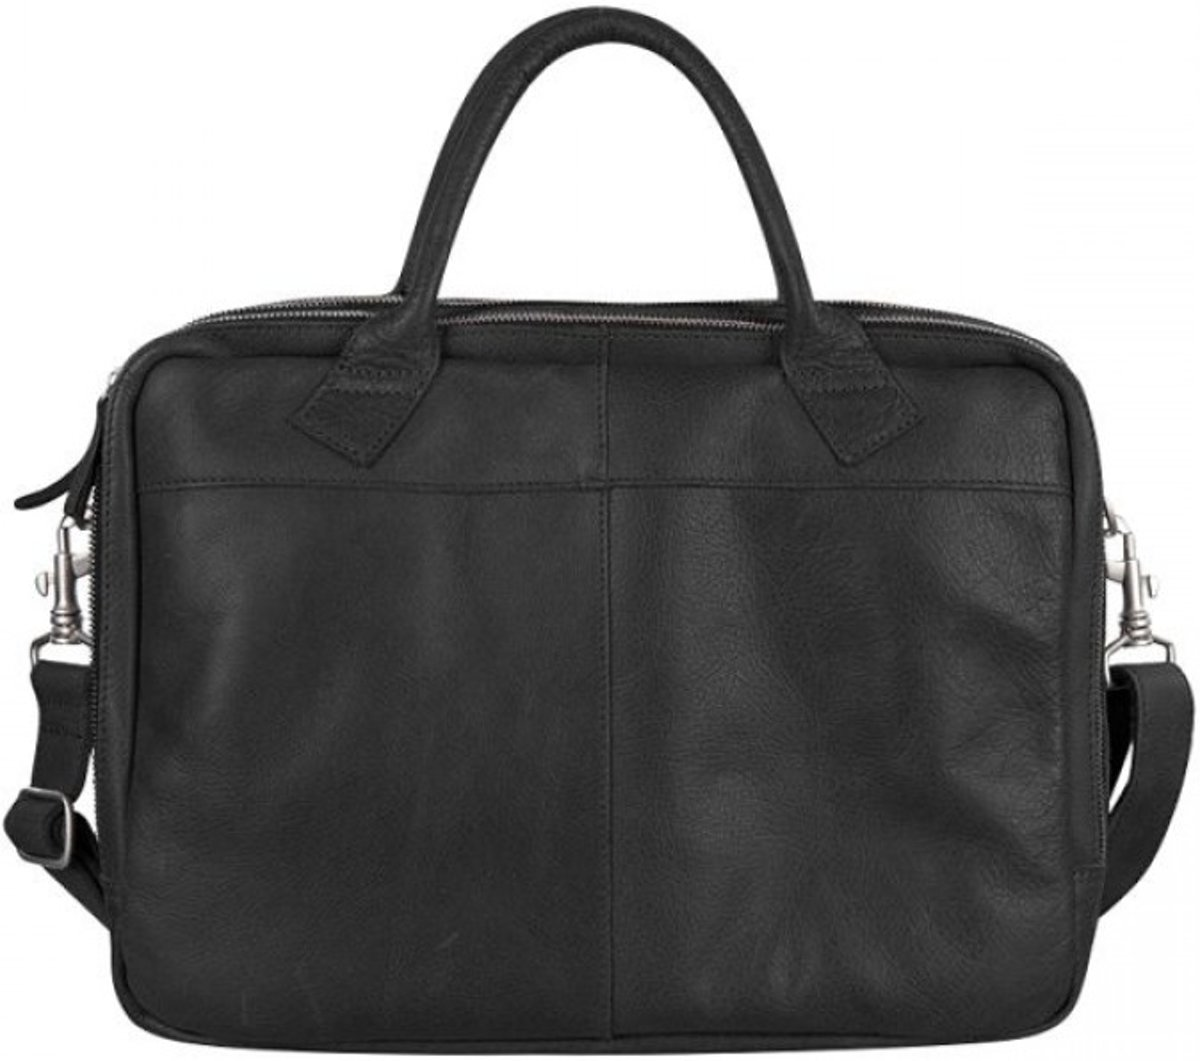 Cowboysbag Crossbodytassen Laptop Bag Fairbanks 13-15 inch Zwart